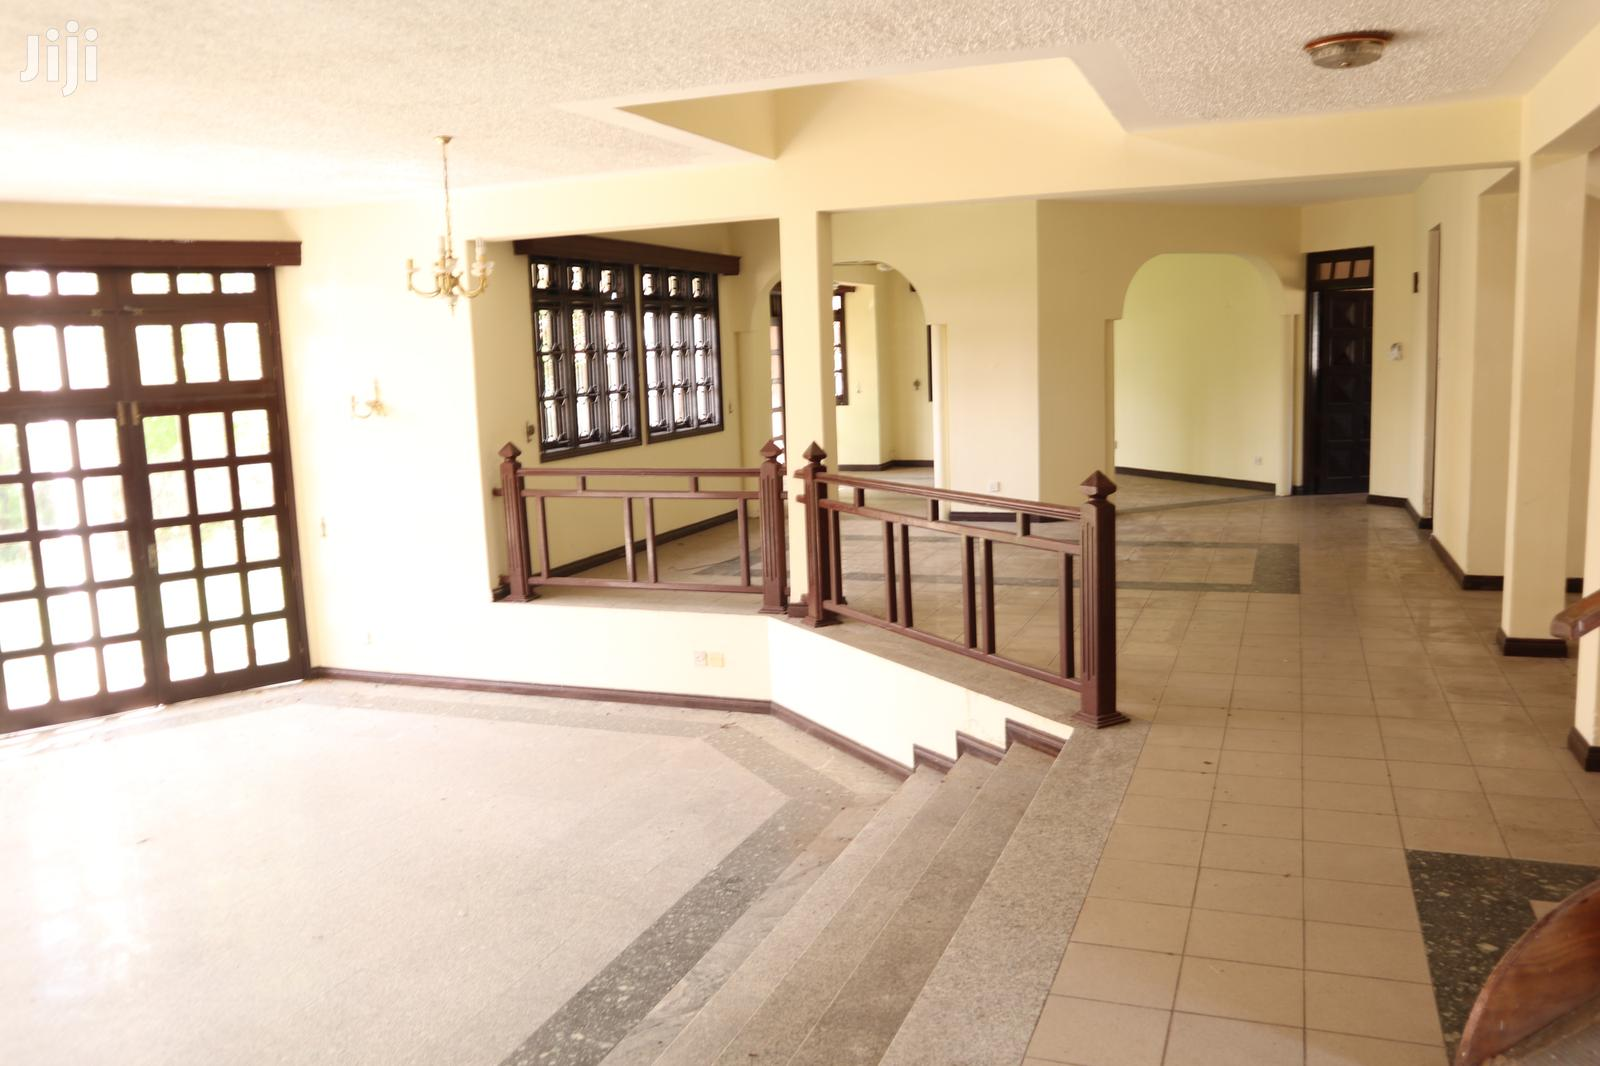 8 Br Mansion Own Compound Ideal For Show Room, Office-benford Homes | Commercial Property For Rent for sale in Nyali, Mombasa, Kenya